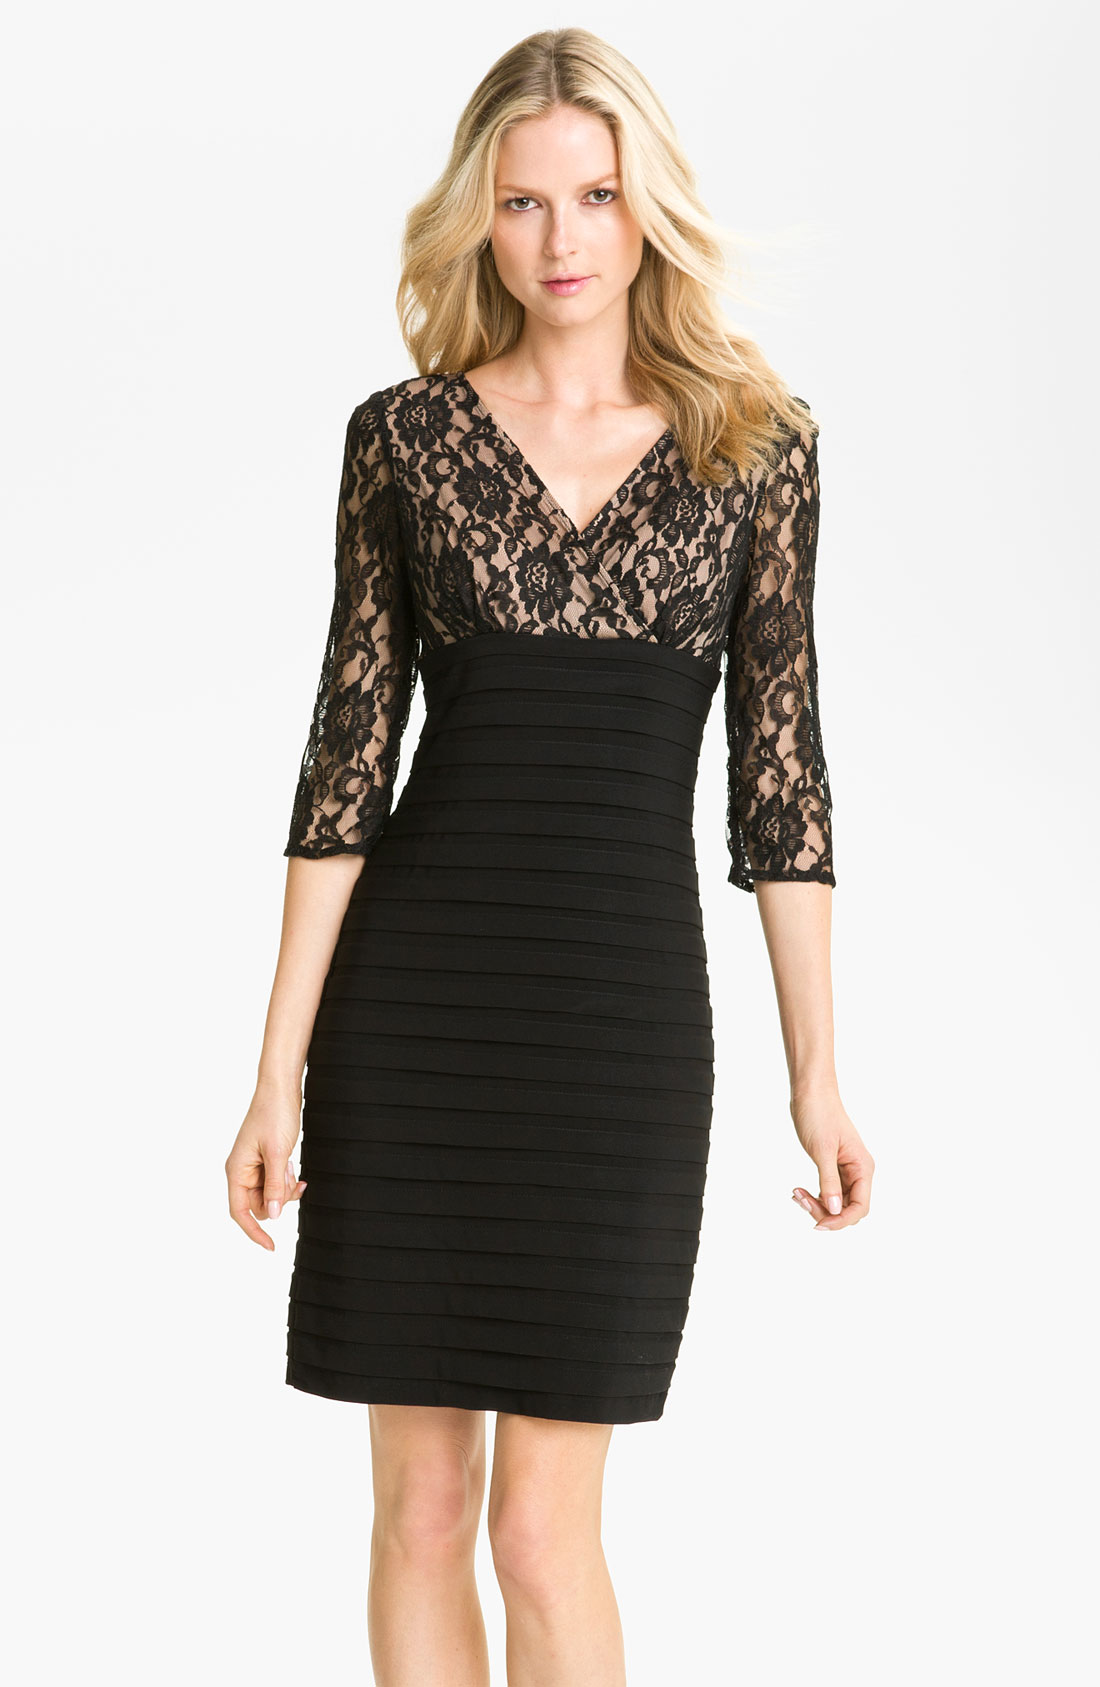 Black Lace Empire Waist Dress